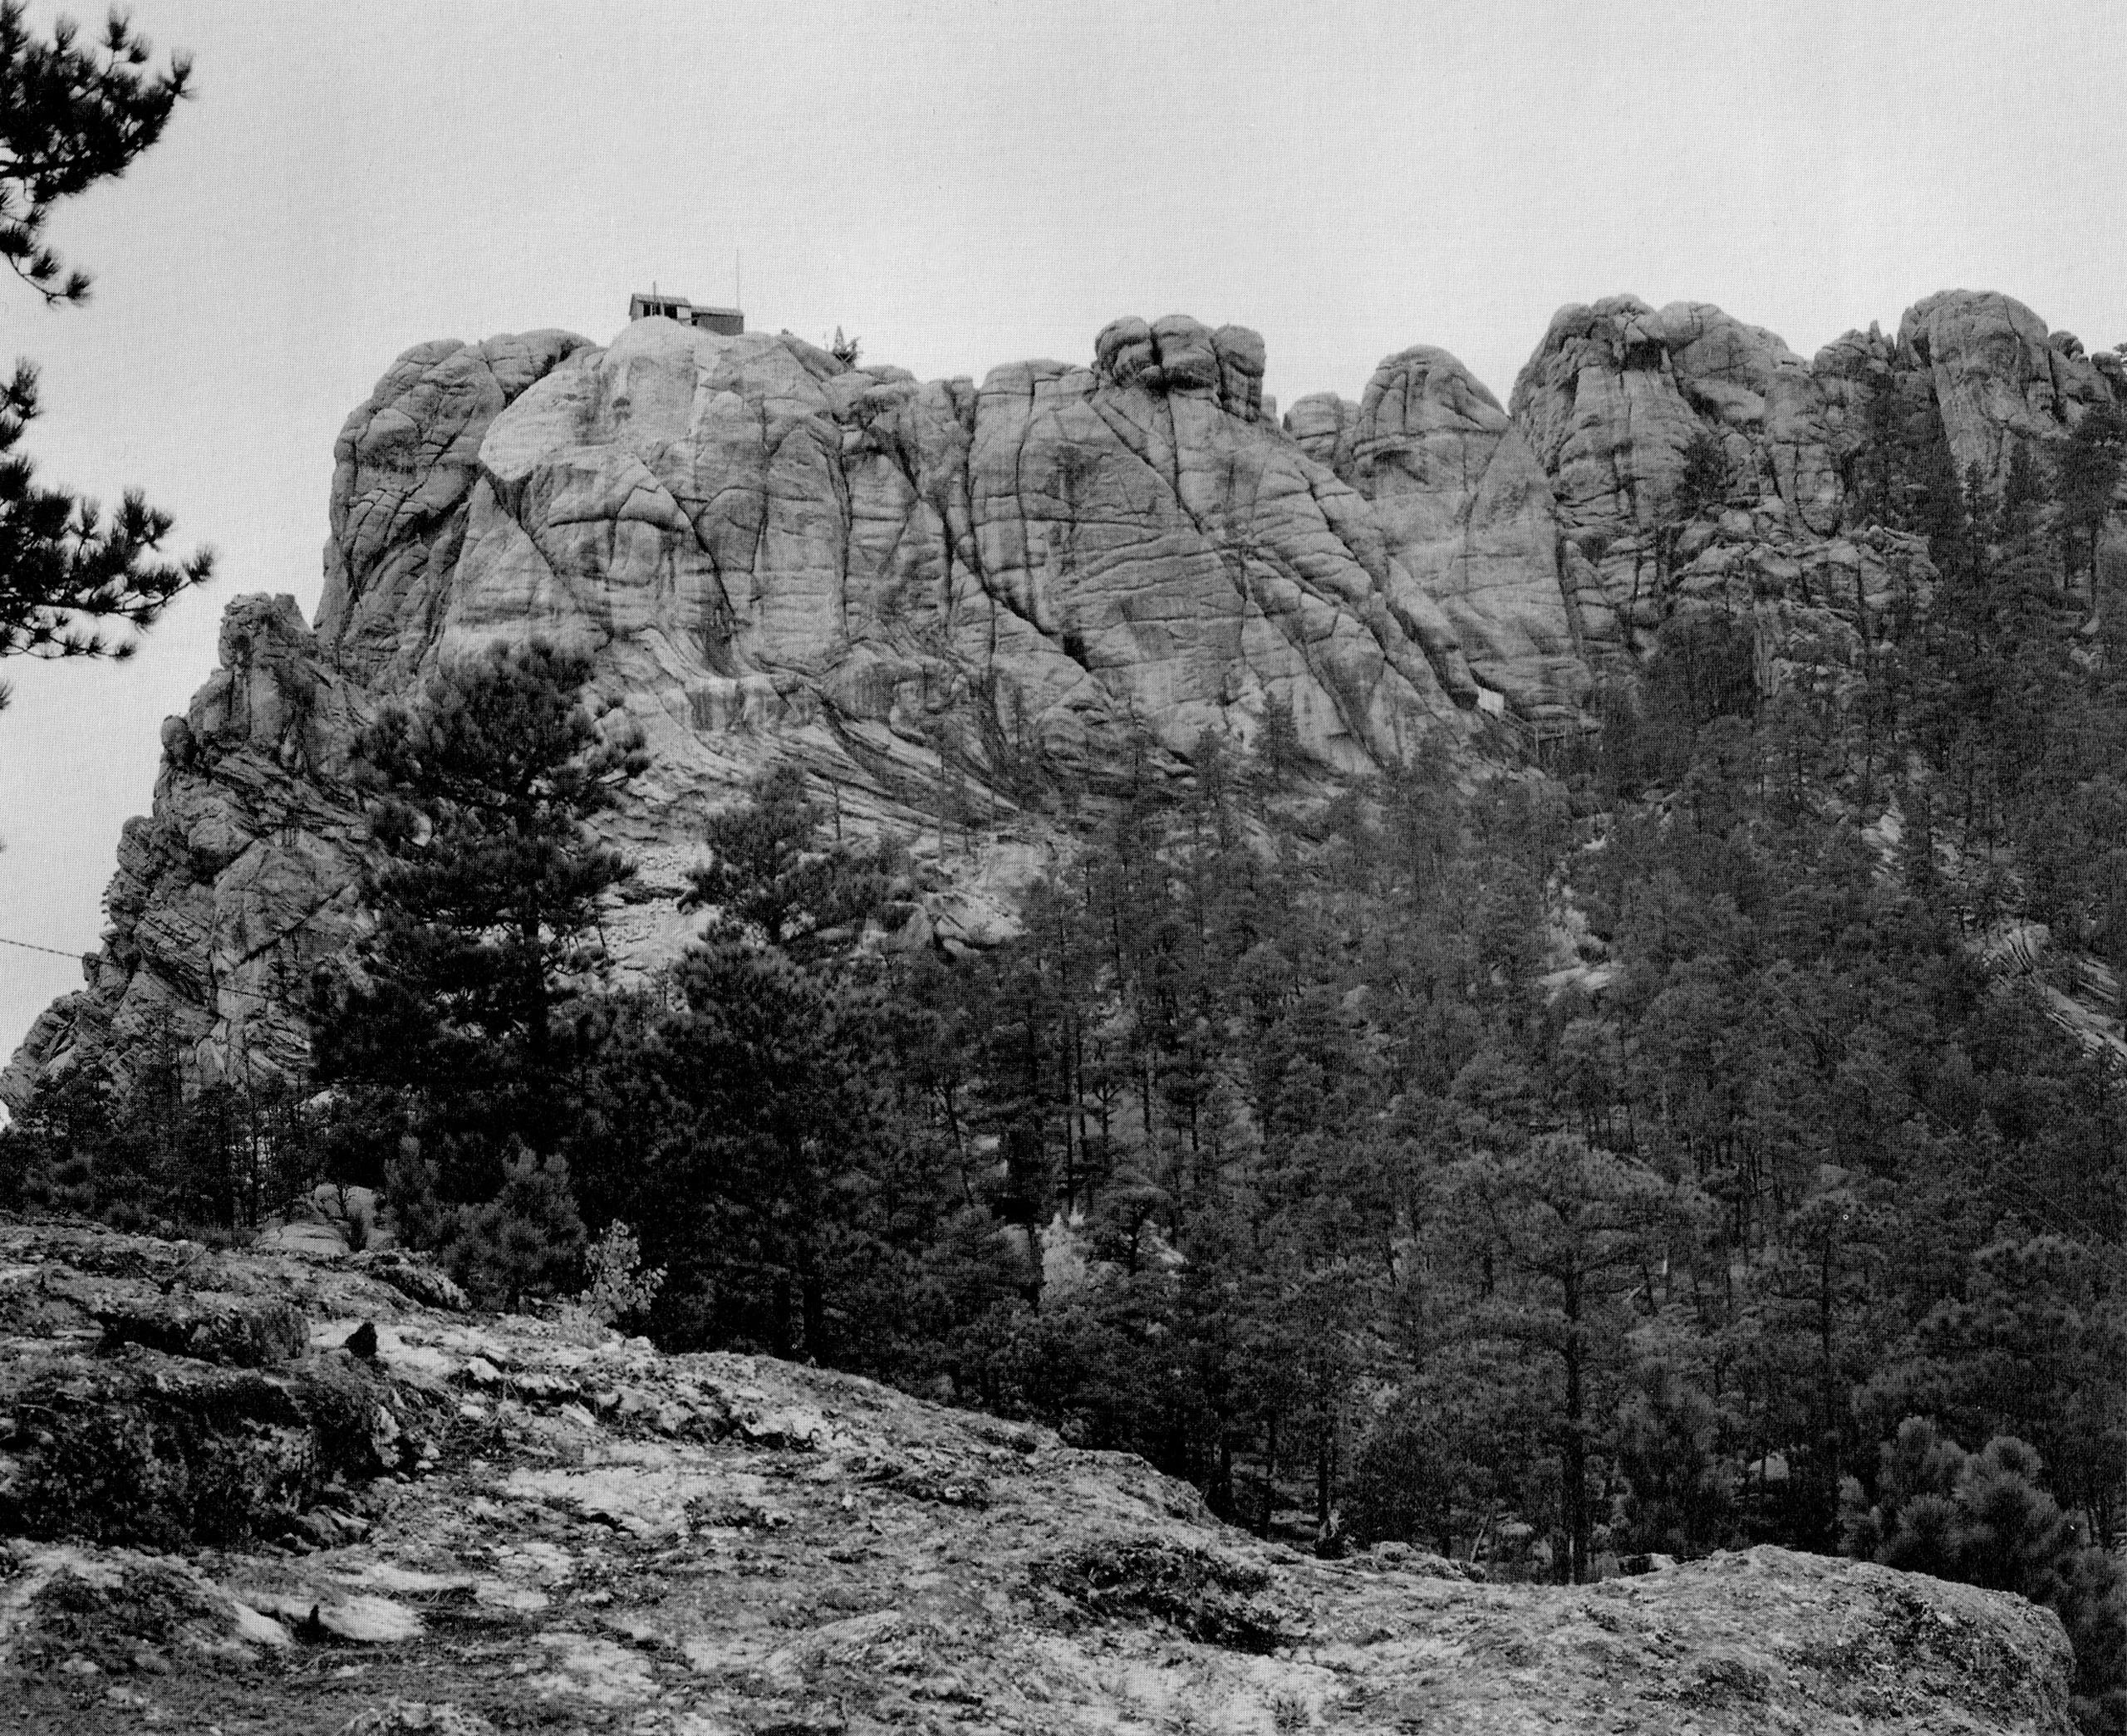 Mount Rushmore with the face of George Washington first beginning to appear (top left), c. 1930s.